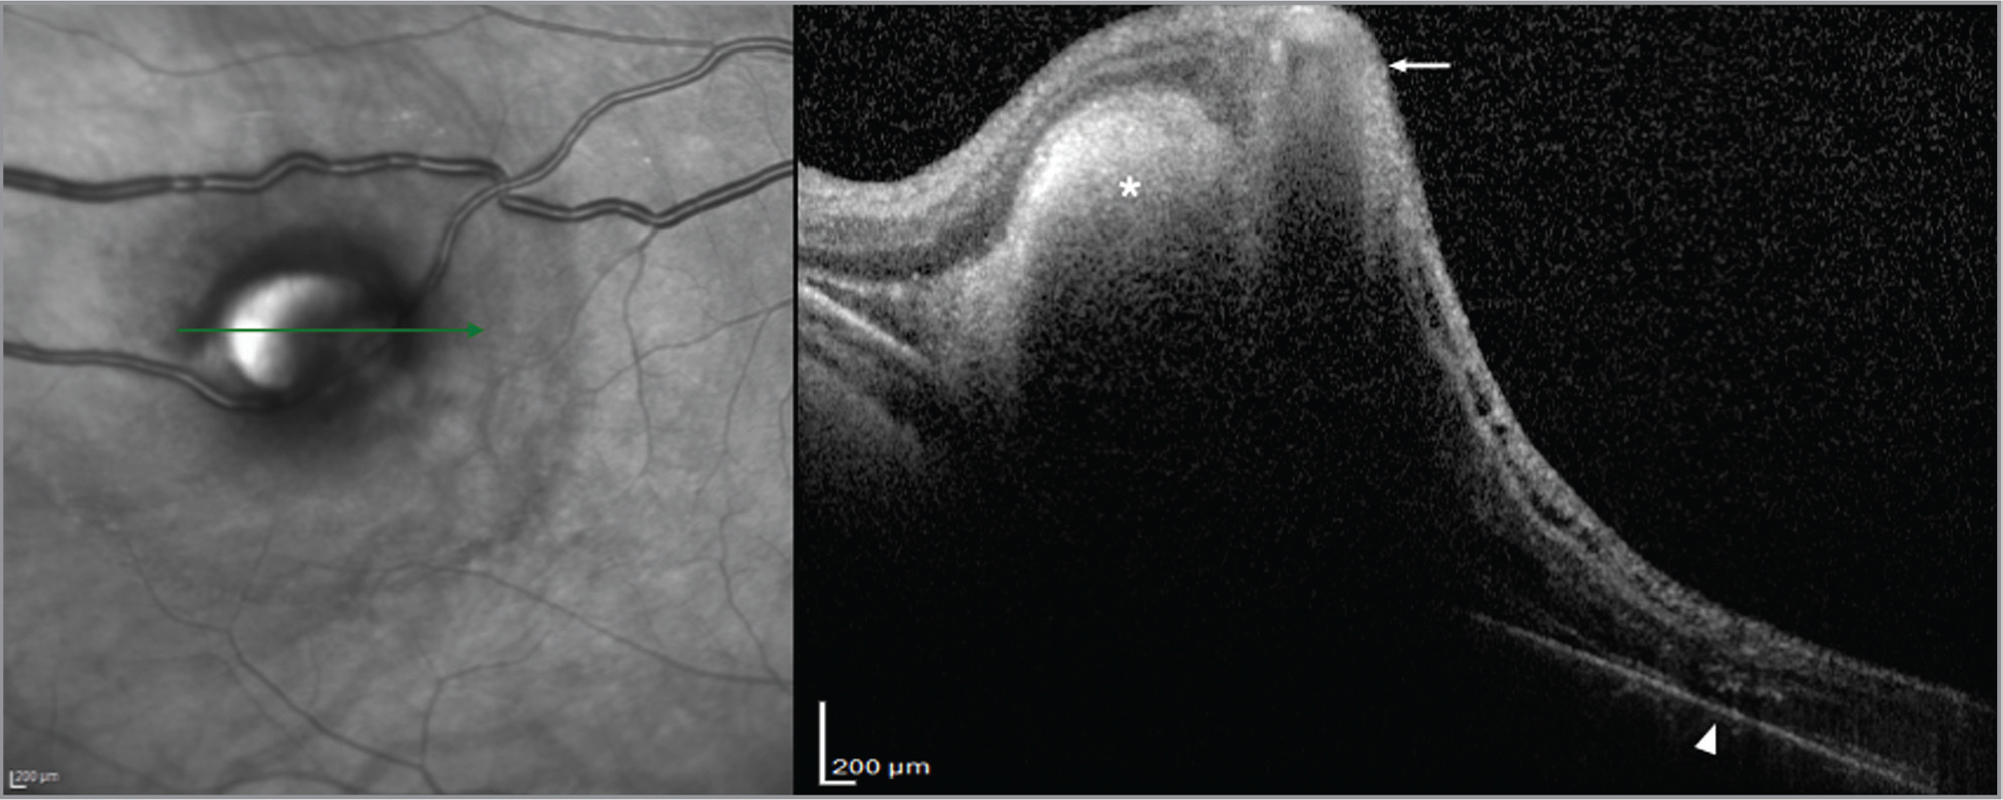 Optical coherence tomography at the level of the microaneurysm demonstrates the dilated vascular lumen with hyperreflective             borders (white arrow), posterior shadowing, adjacent subretinal hemorrhage (asterisk), and outer retinal exudation (arrowhead).